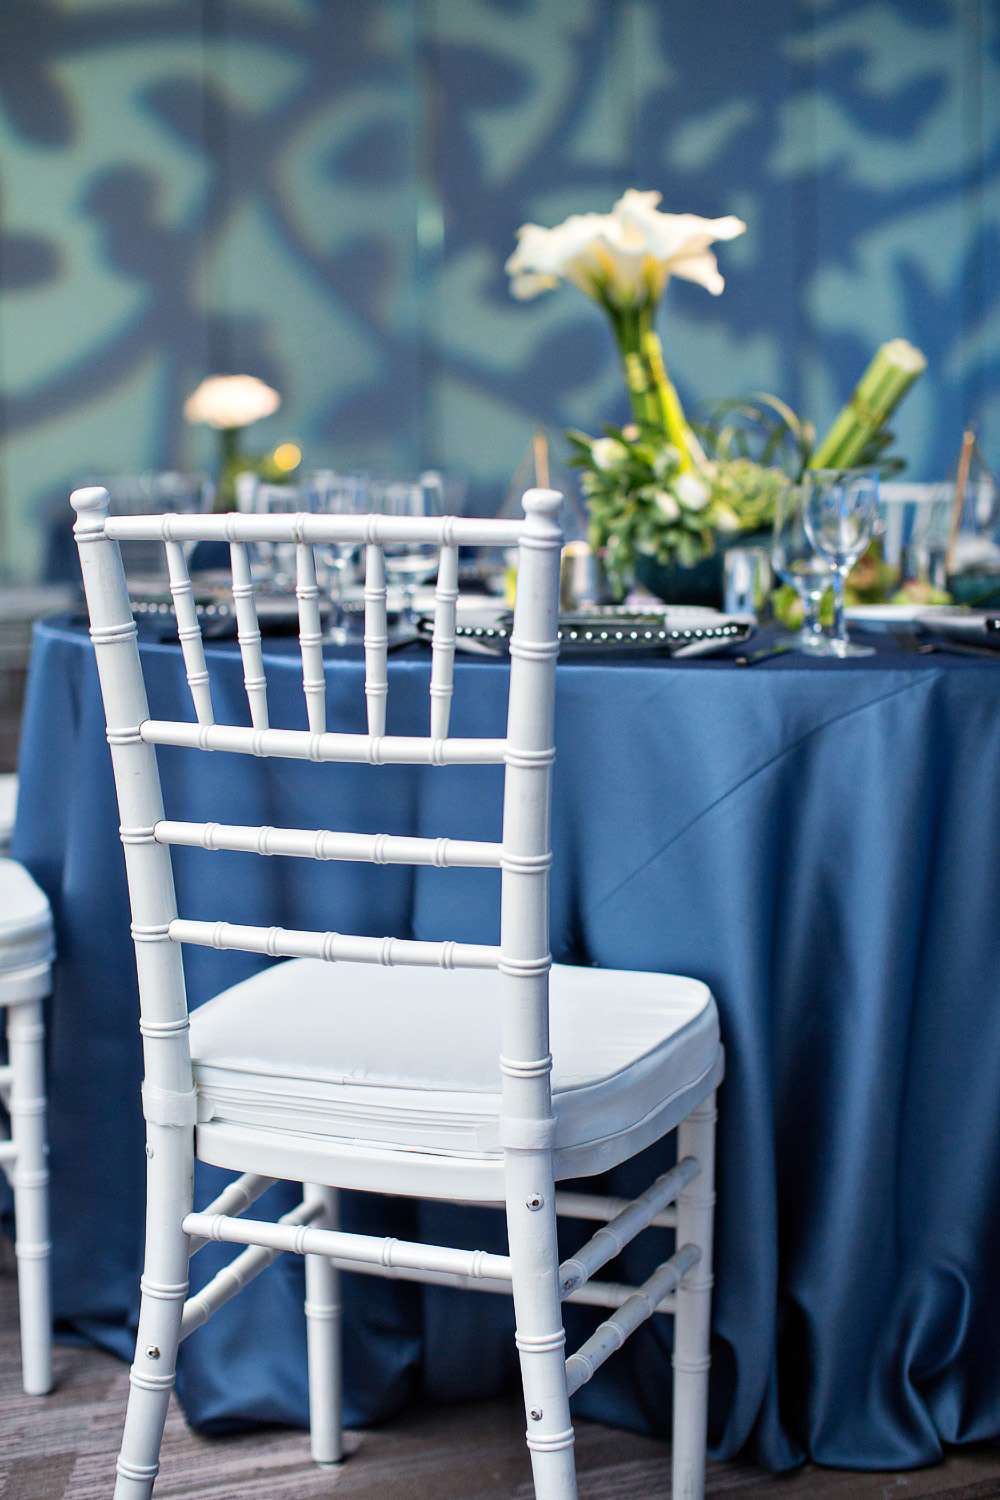 ABC South Bay White Chiavari Chair (Long Beach Hilton).jpg